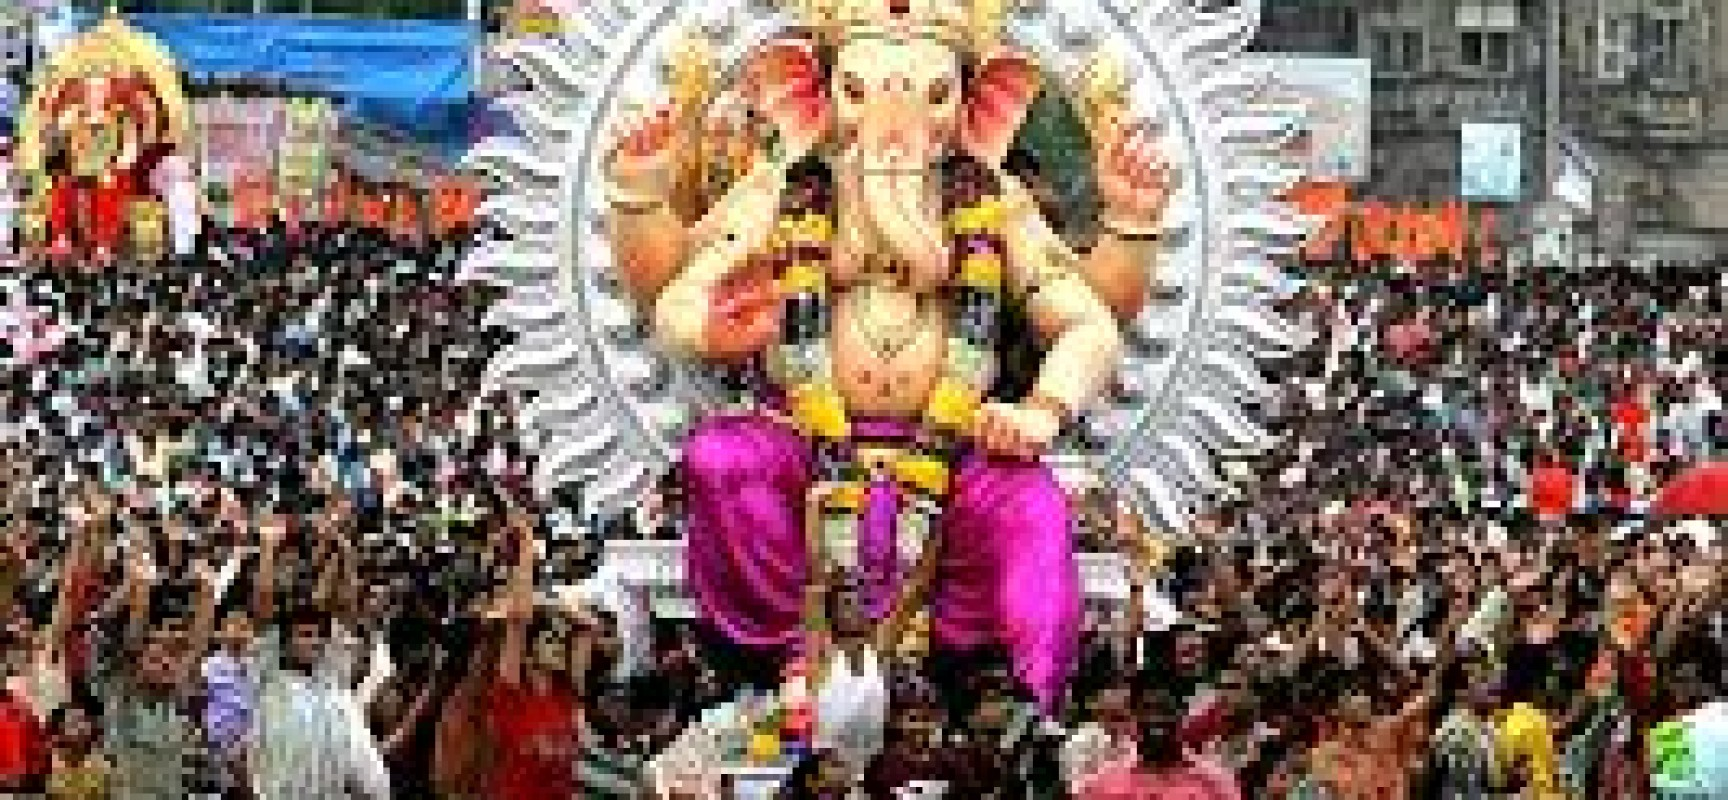 Ganesh chaturthi celebrations in India